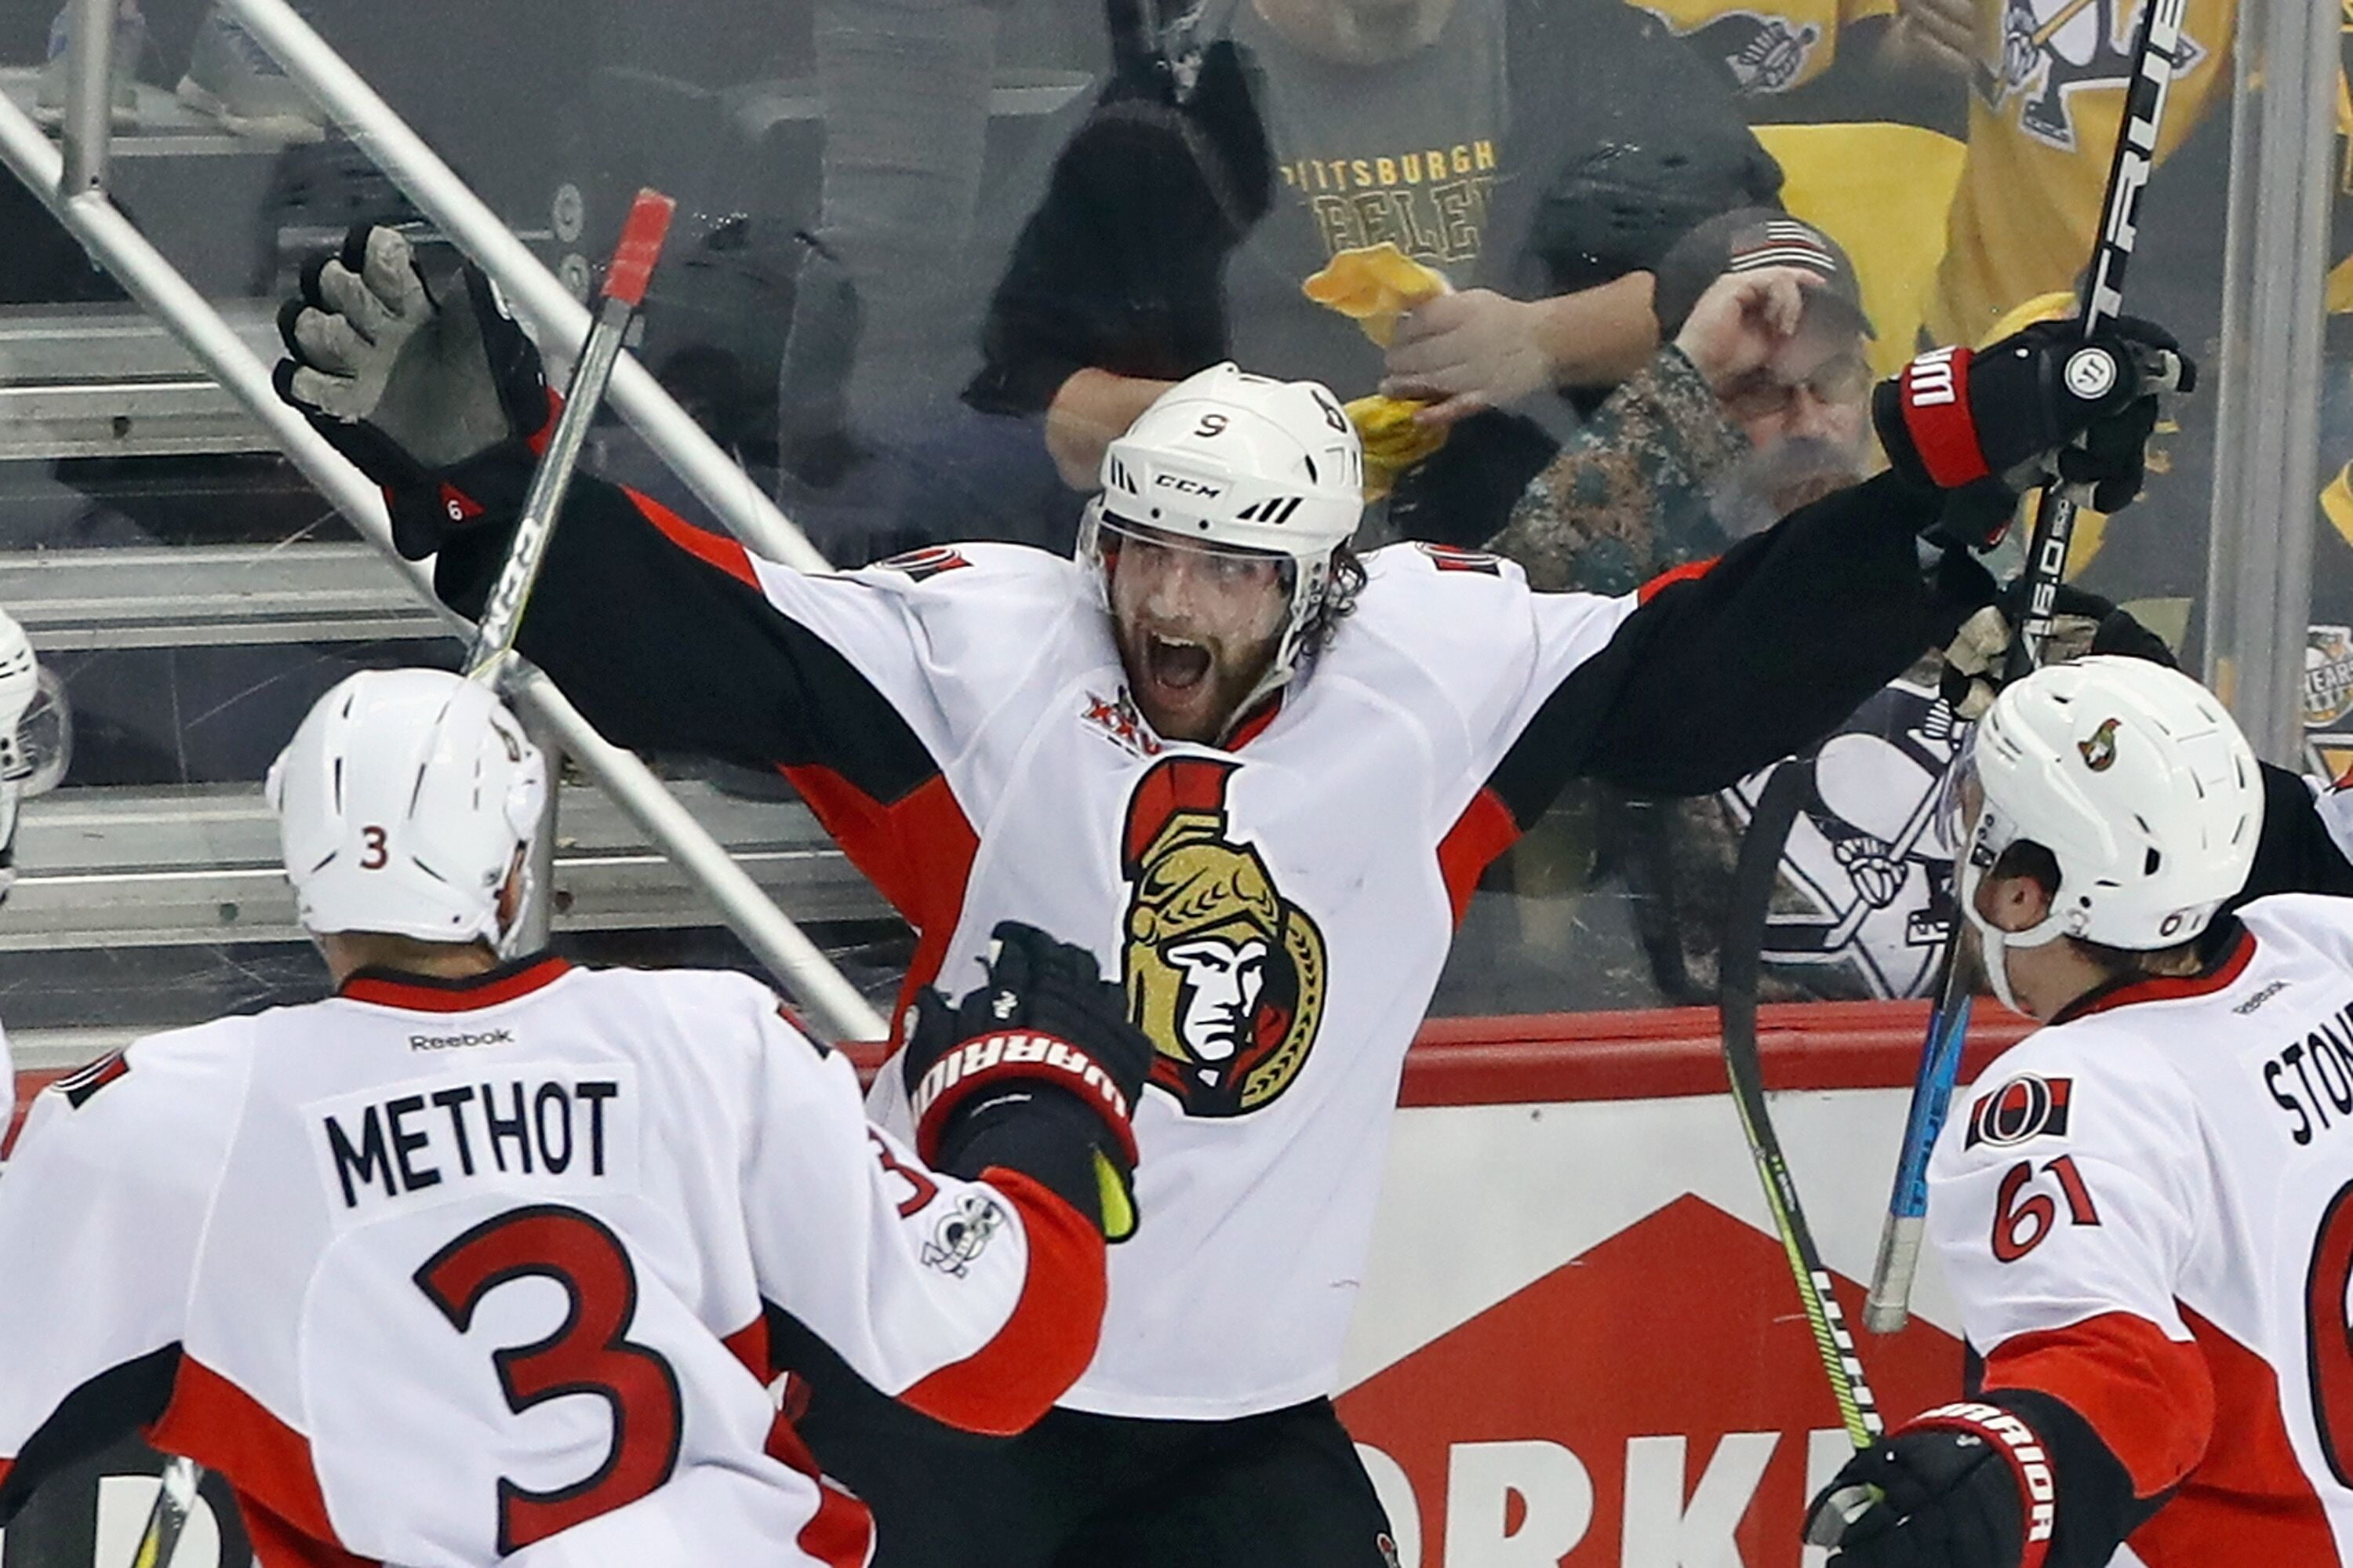 682973788-ottawa-senators-v-pittsburgh-penguins-game-one.jpg